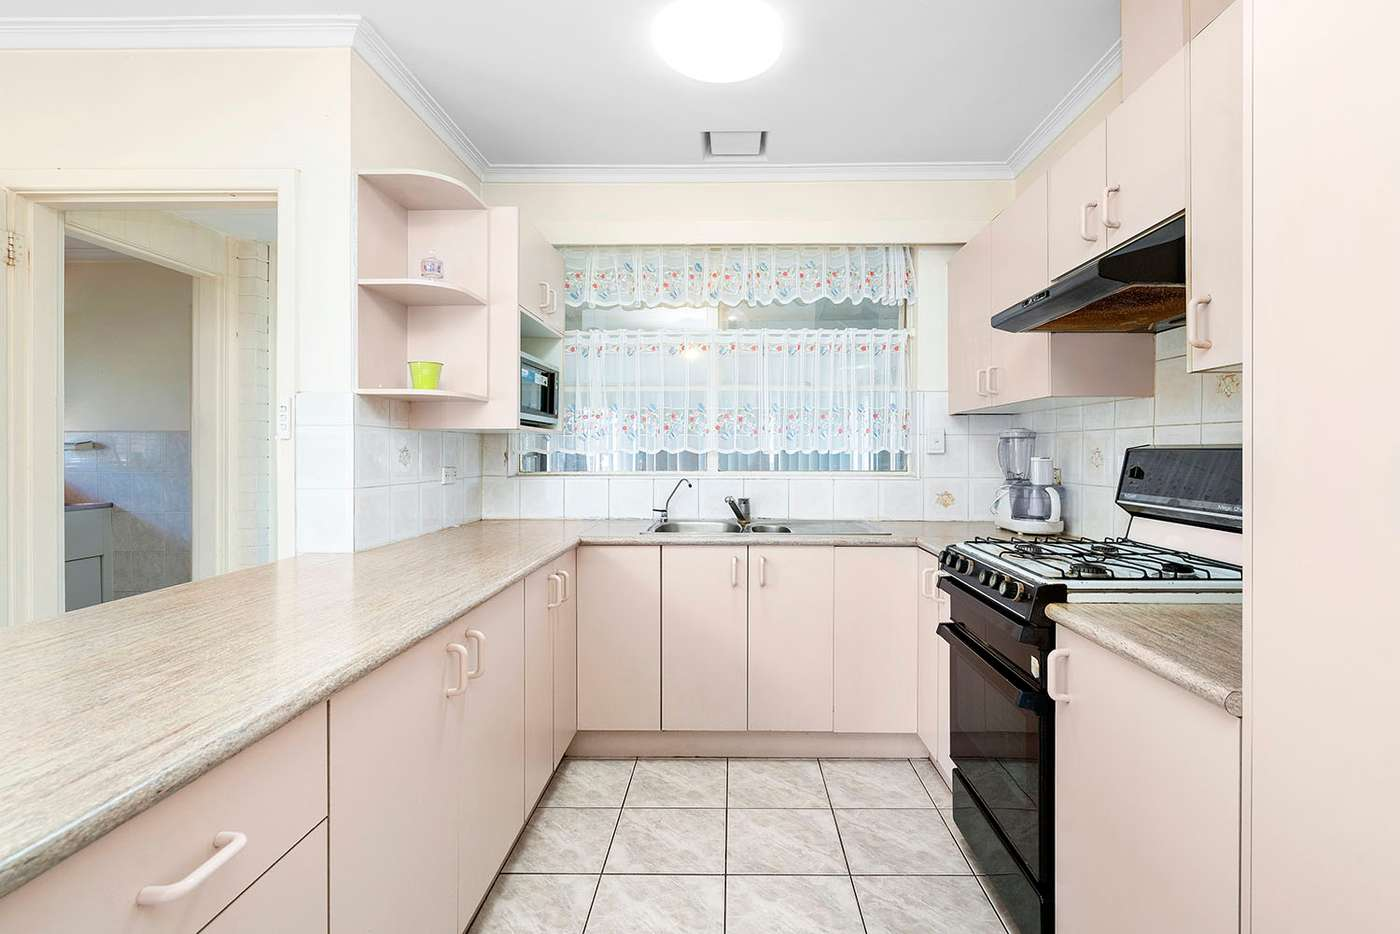 Fifth view of Homely house listing, 125 Centre Dandenong Road, Cheltenham VIC 3192